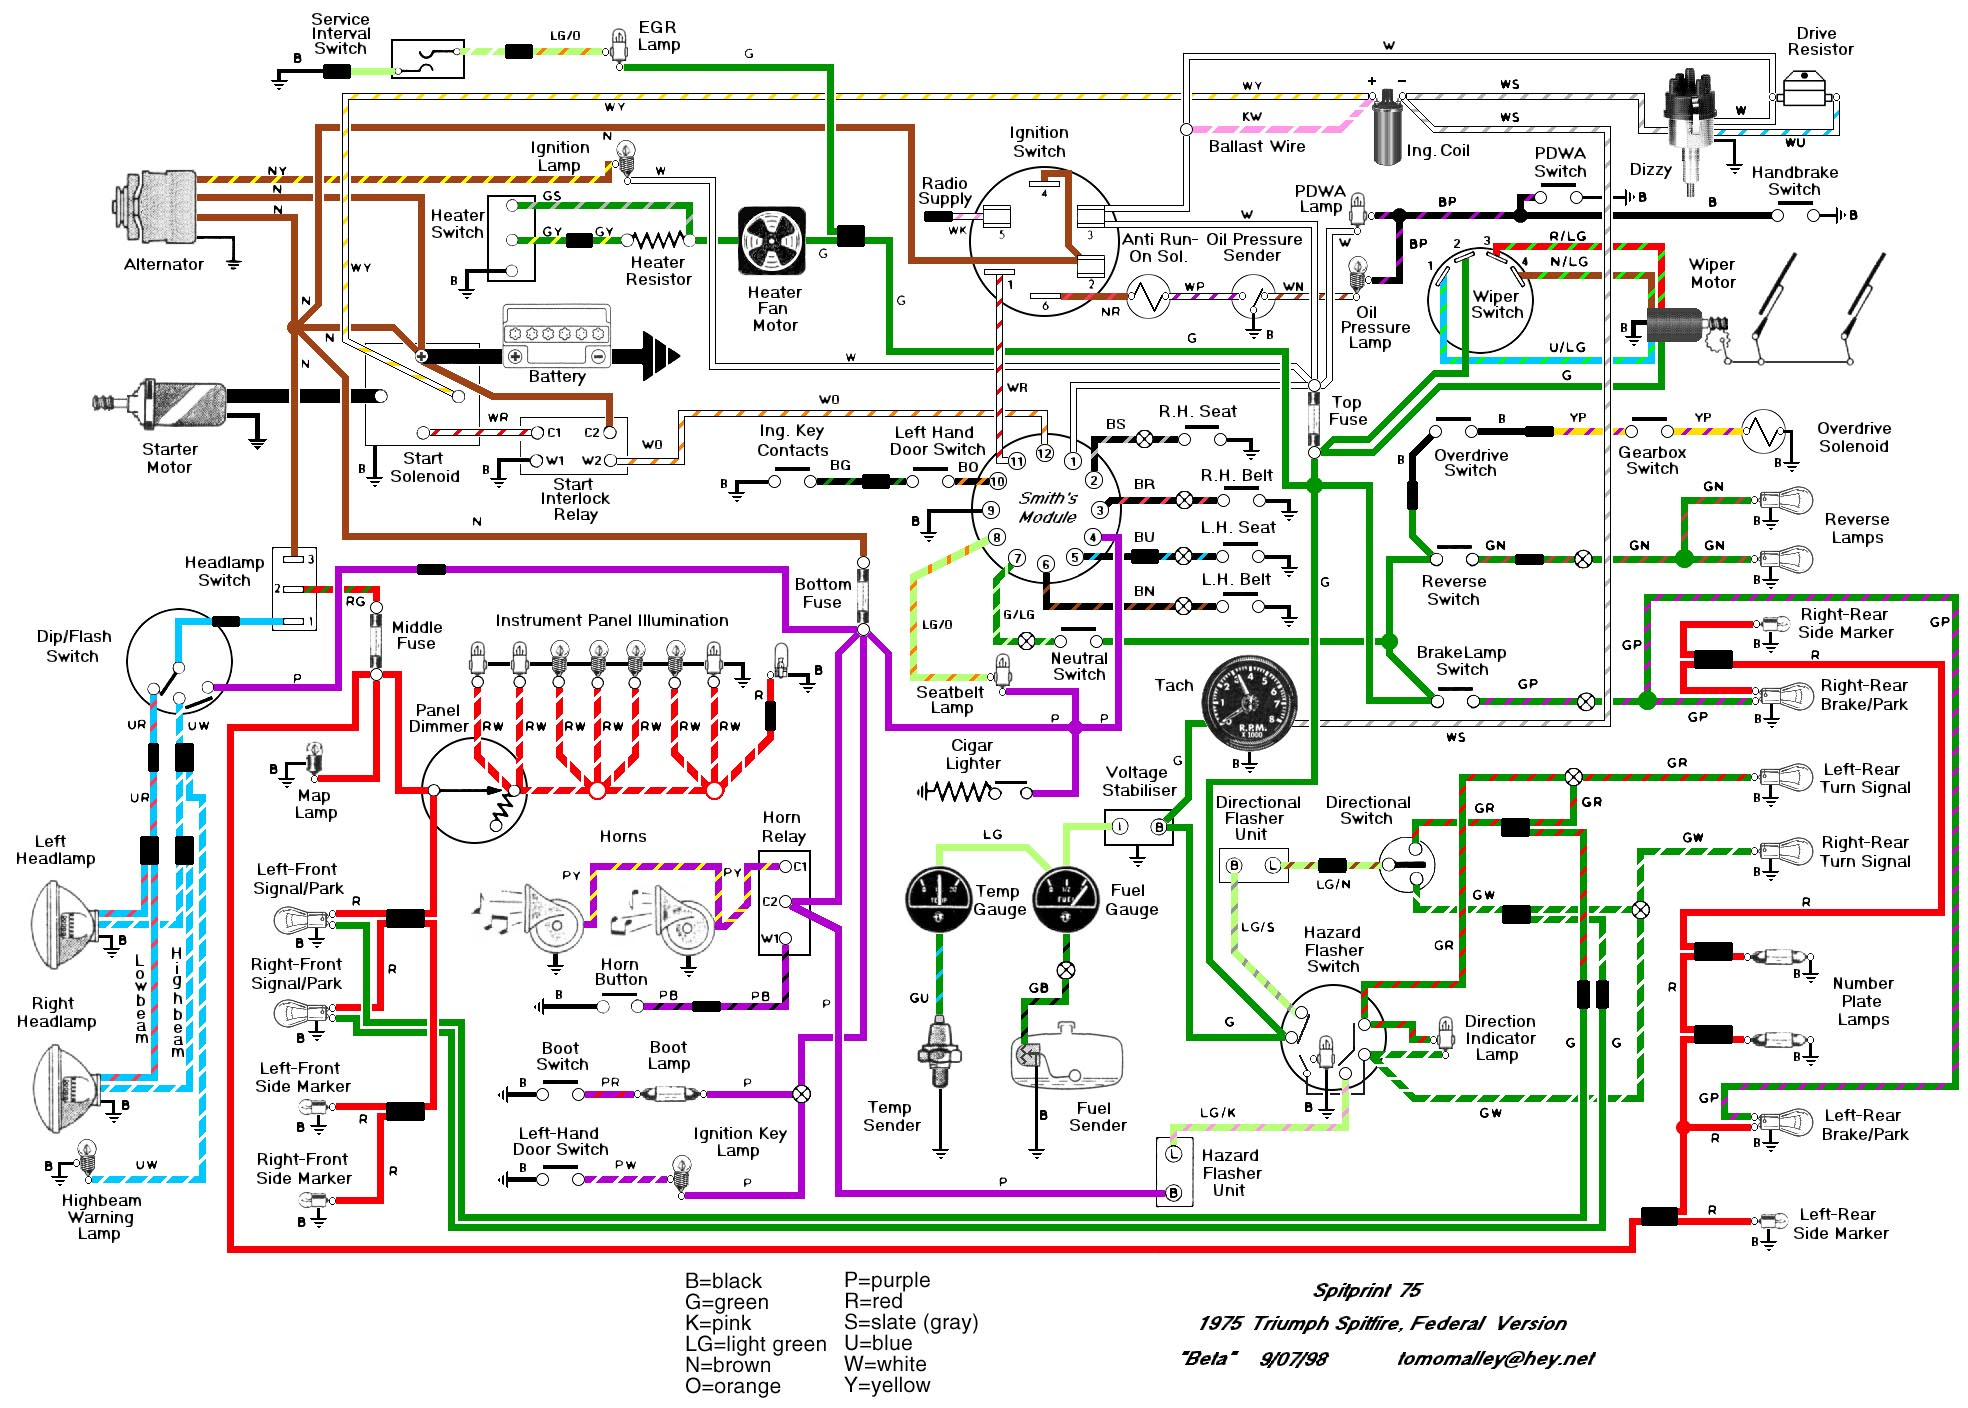 diagram] 1979 mgb wiring diagram schematic full version hd quality diagram  schematic - guidetomd.scarpeskecherssport.it  guidetomd.scarpeskecherssport.it